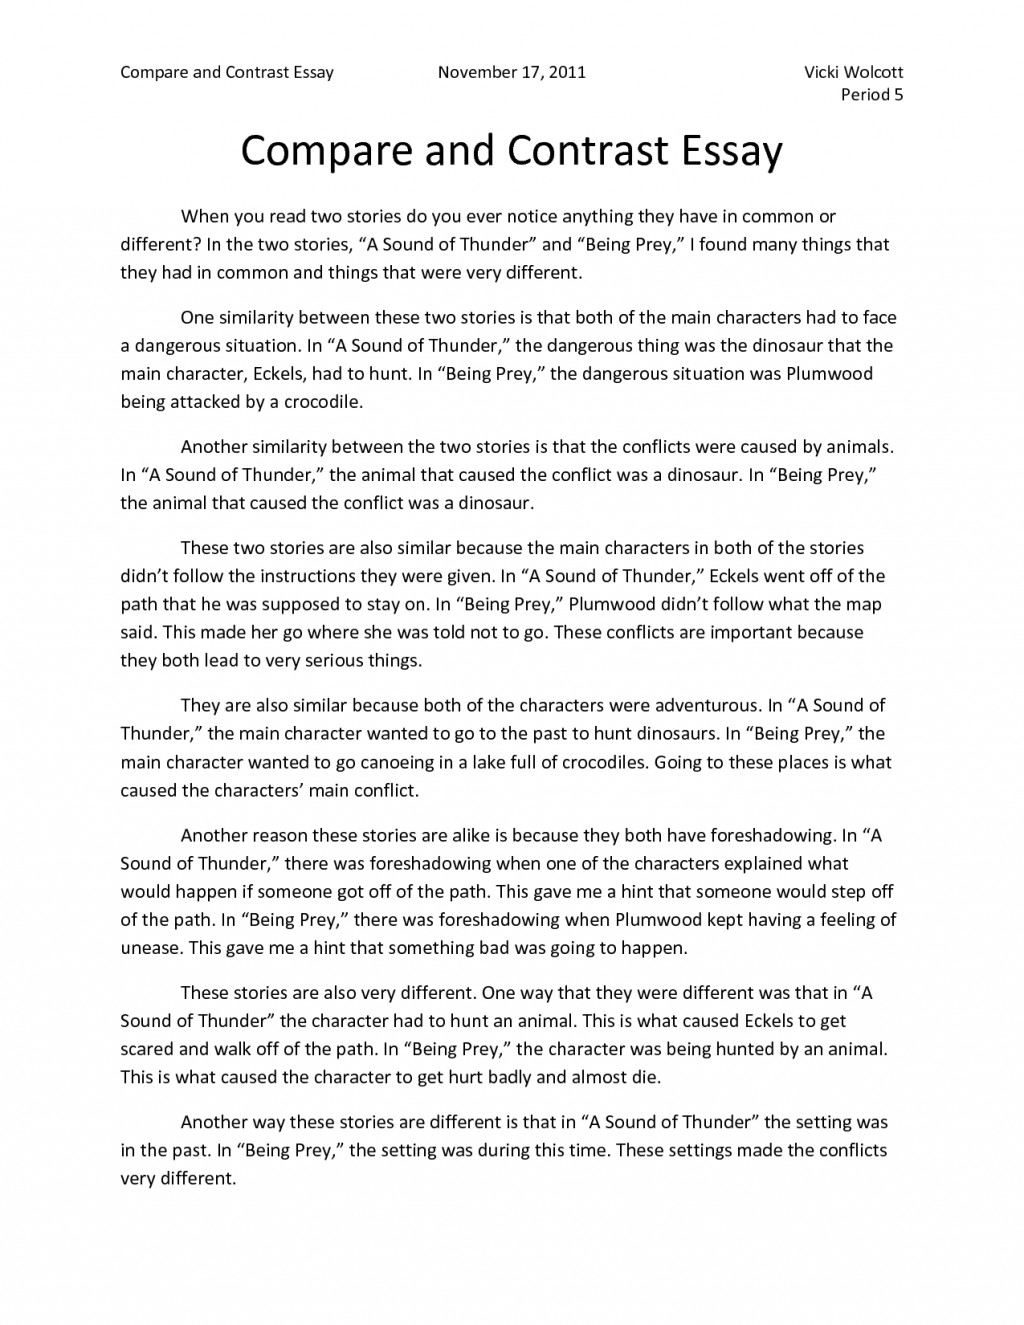 004 Compare And Contrast Basic How To Start Comparative Essay Beautiful A Writing Comparison Begin Thesis Large